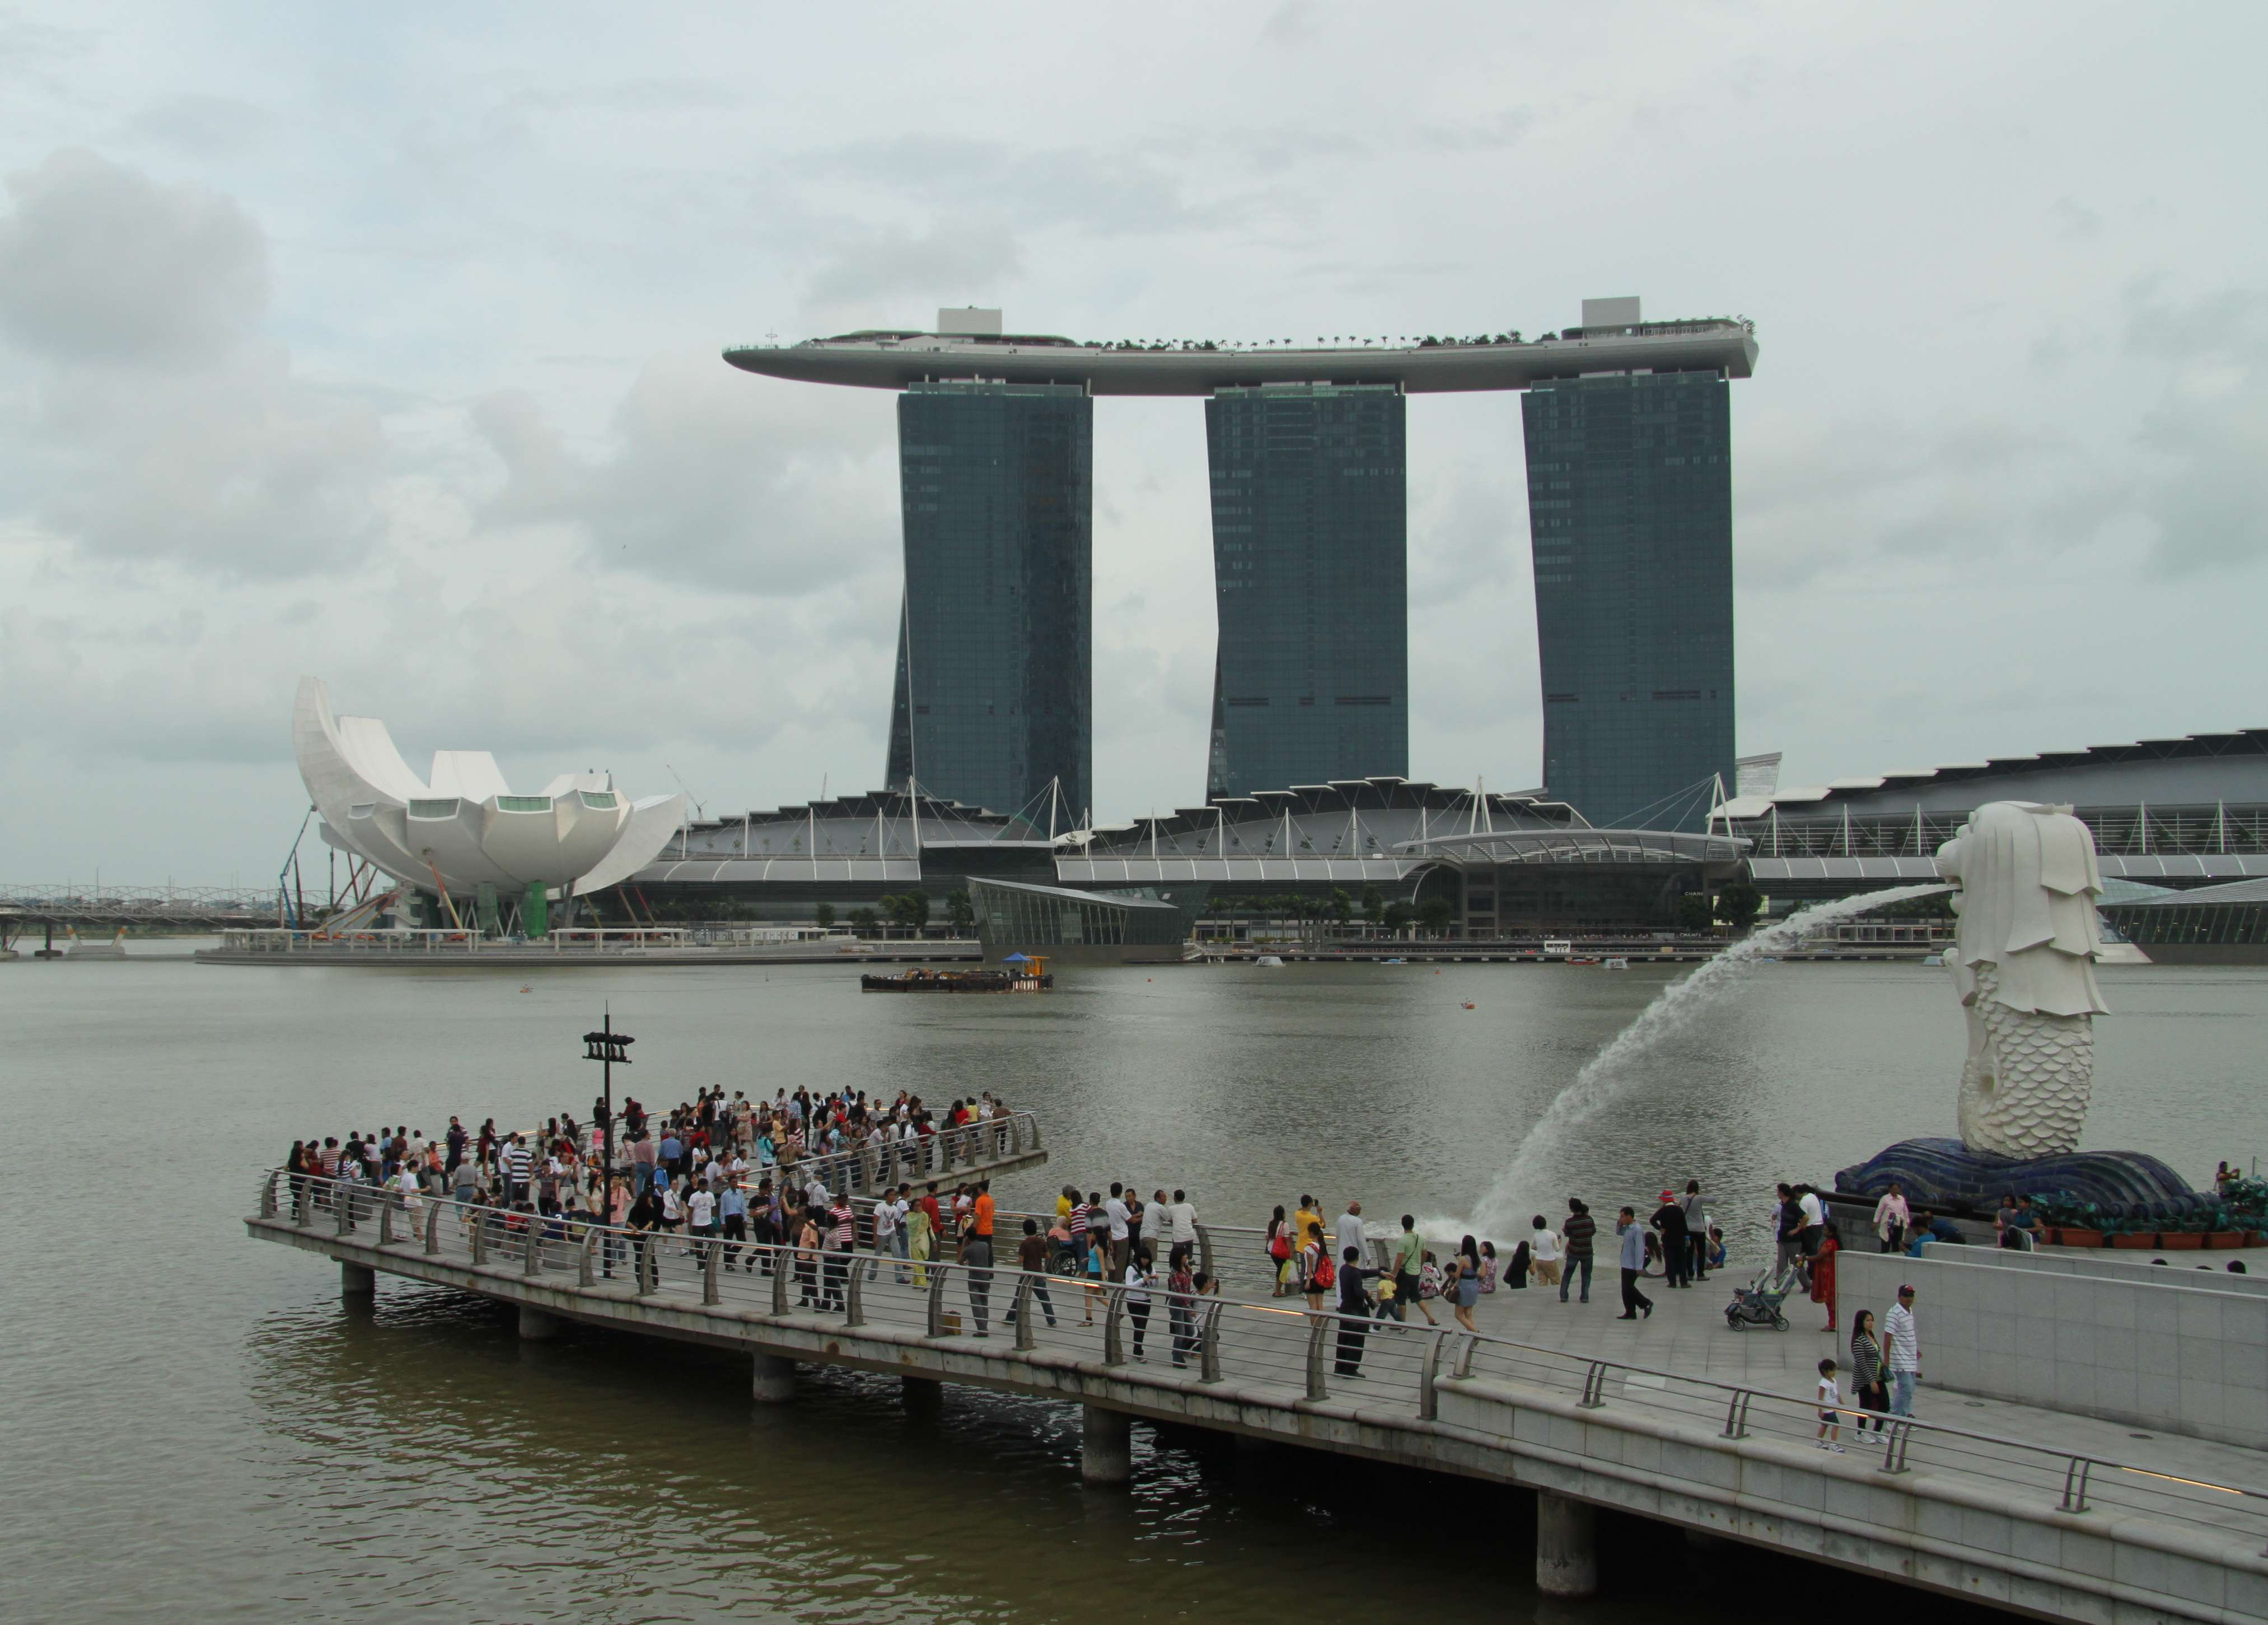 In a city full of fine dining, shopping and hotels, the new Marina Bay ...